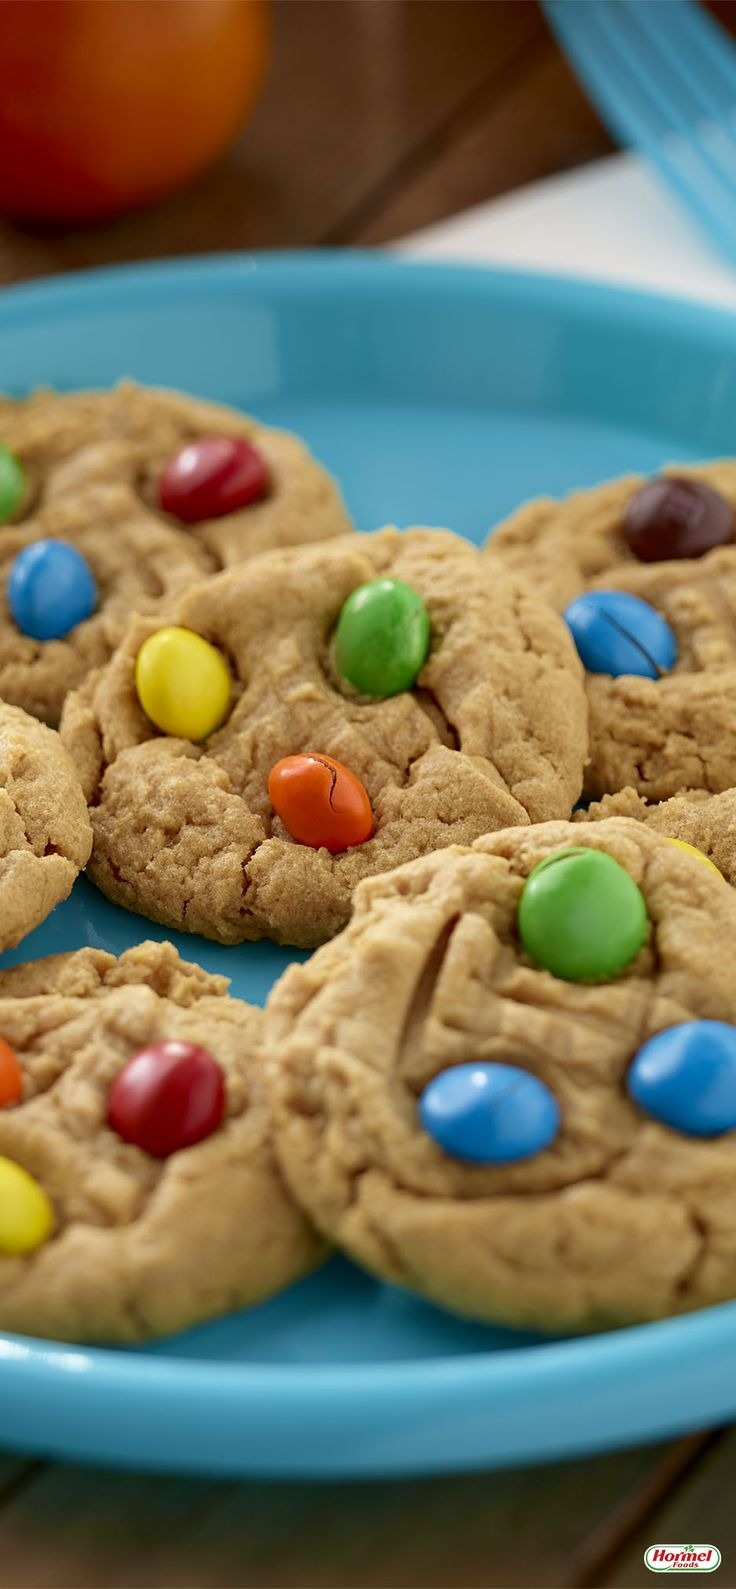 How can you make skippy peanut butter cookies even more for Desserts you can make with peanut butter